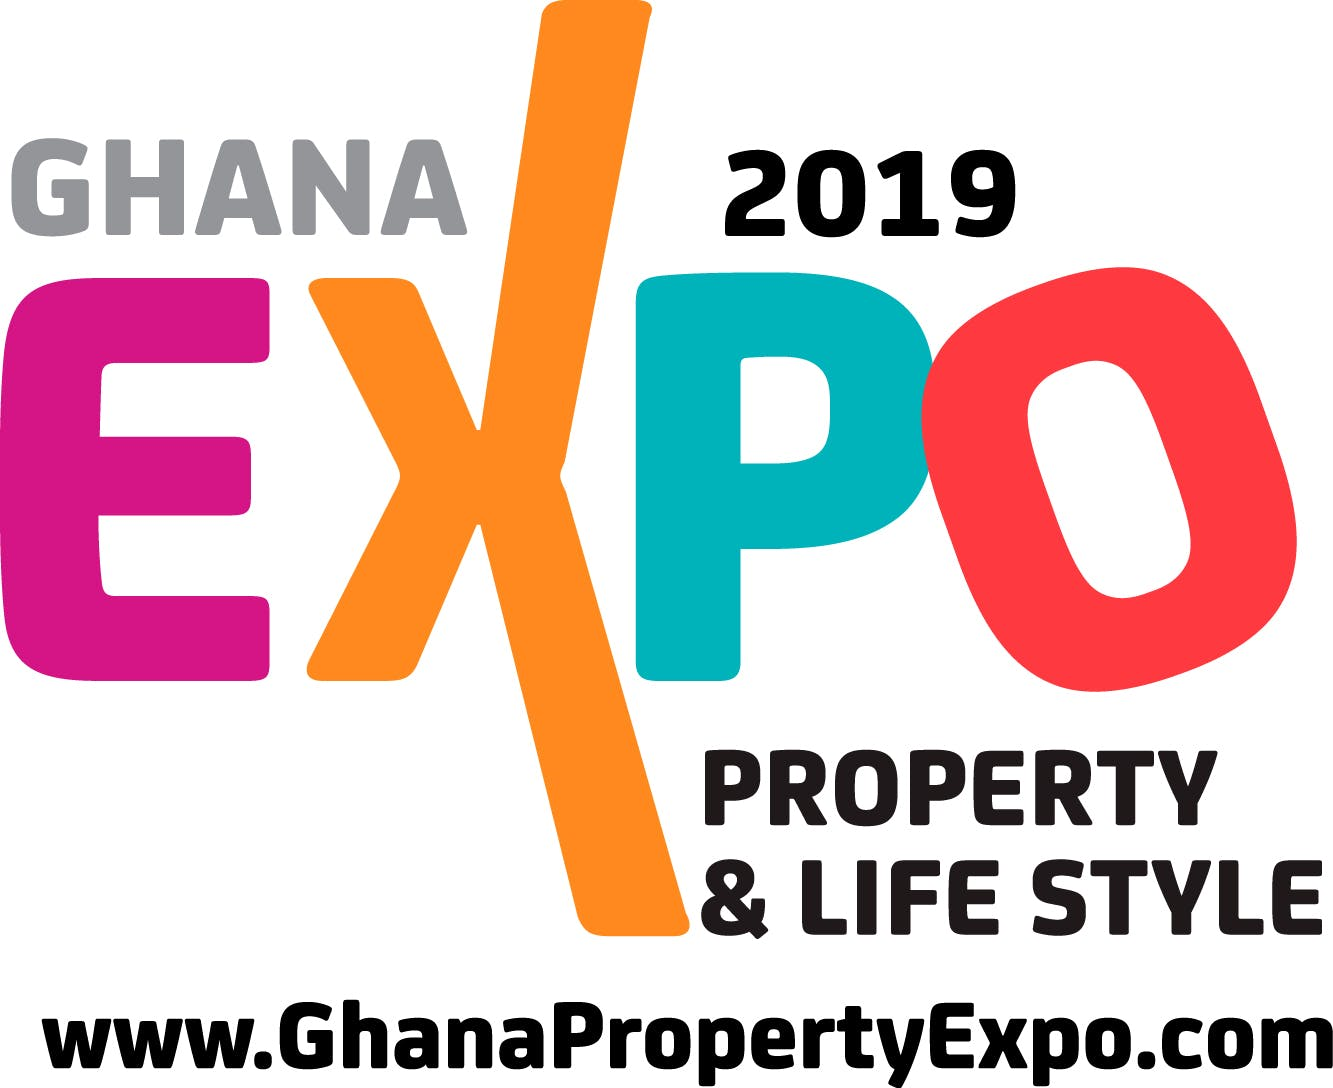 Ghana Property & Lifestyle Expo 2019 UK - 3rd Edition (London)